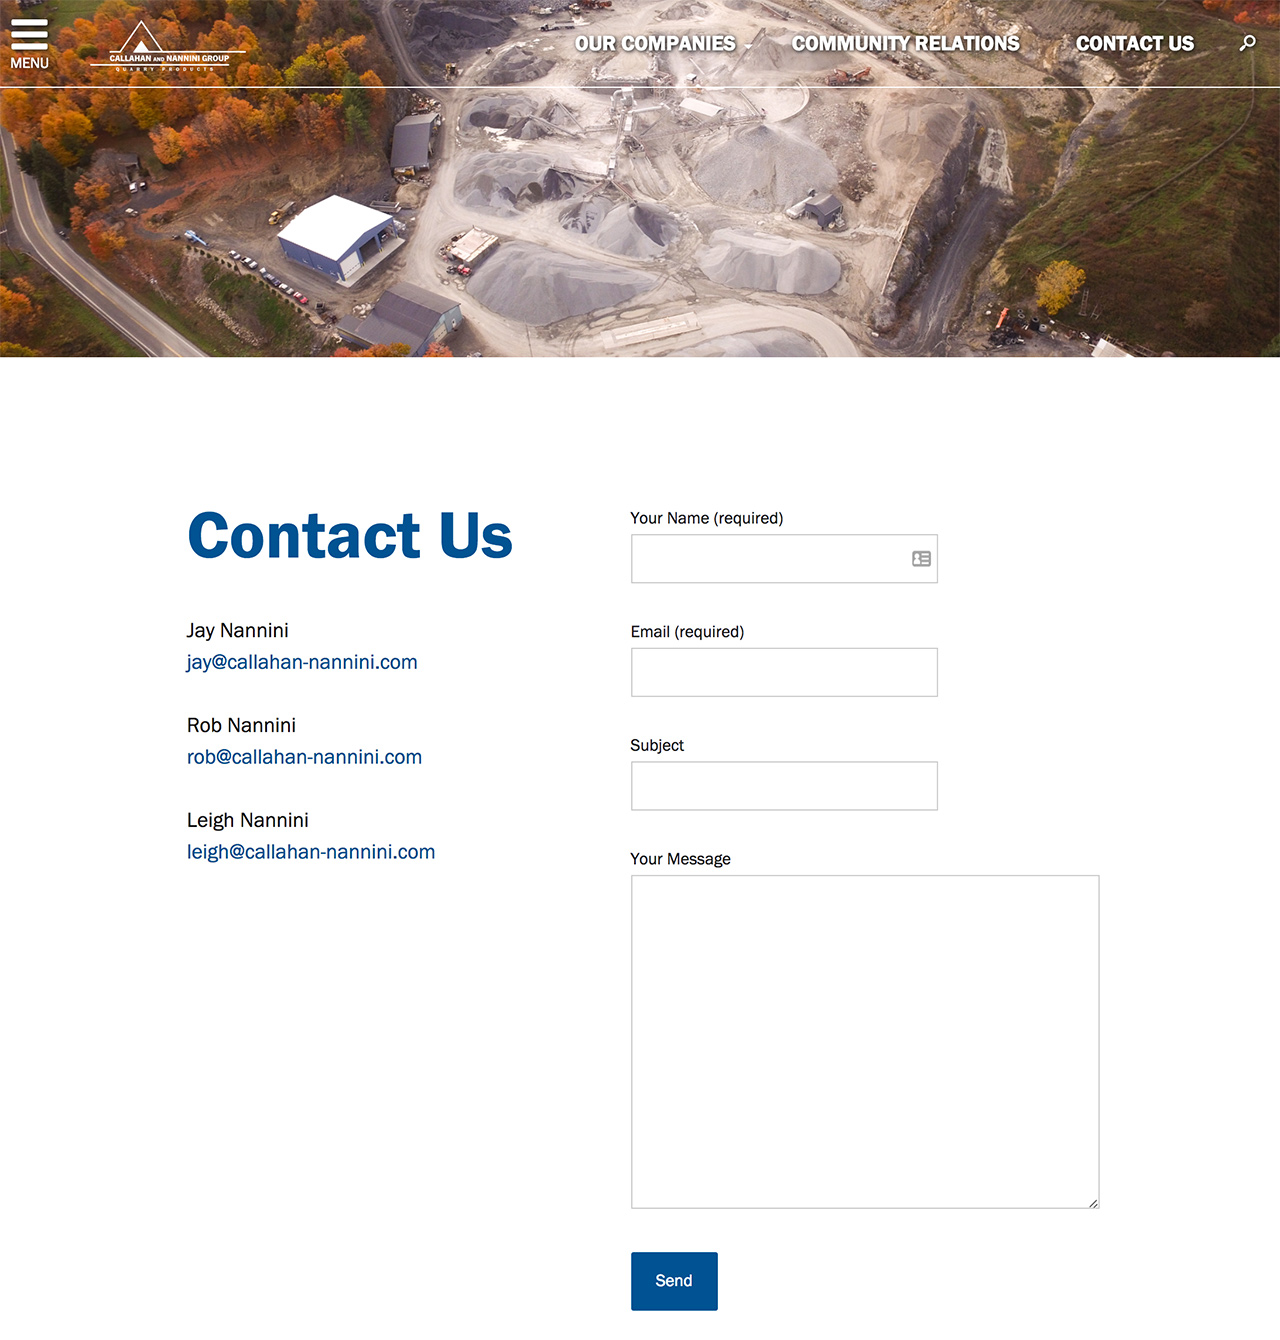 Callahan and Nannini Group: Callahan and Nannini Group Contact